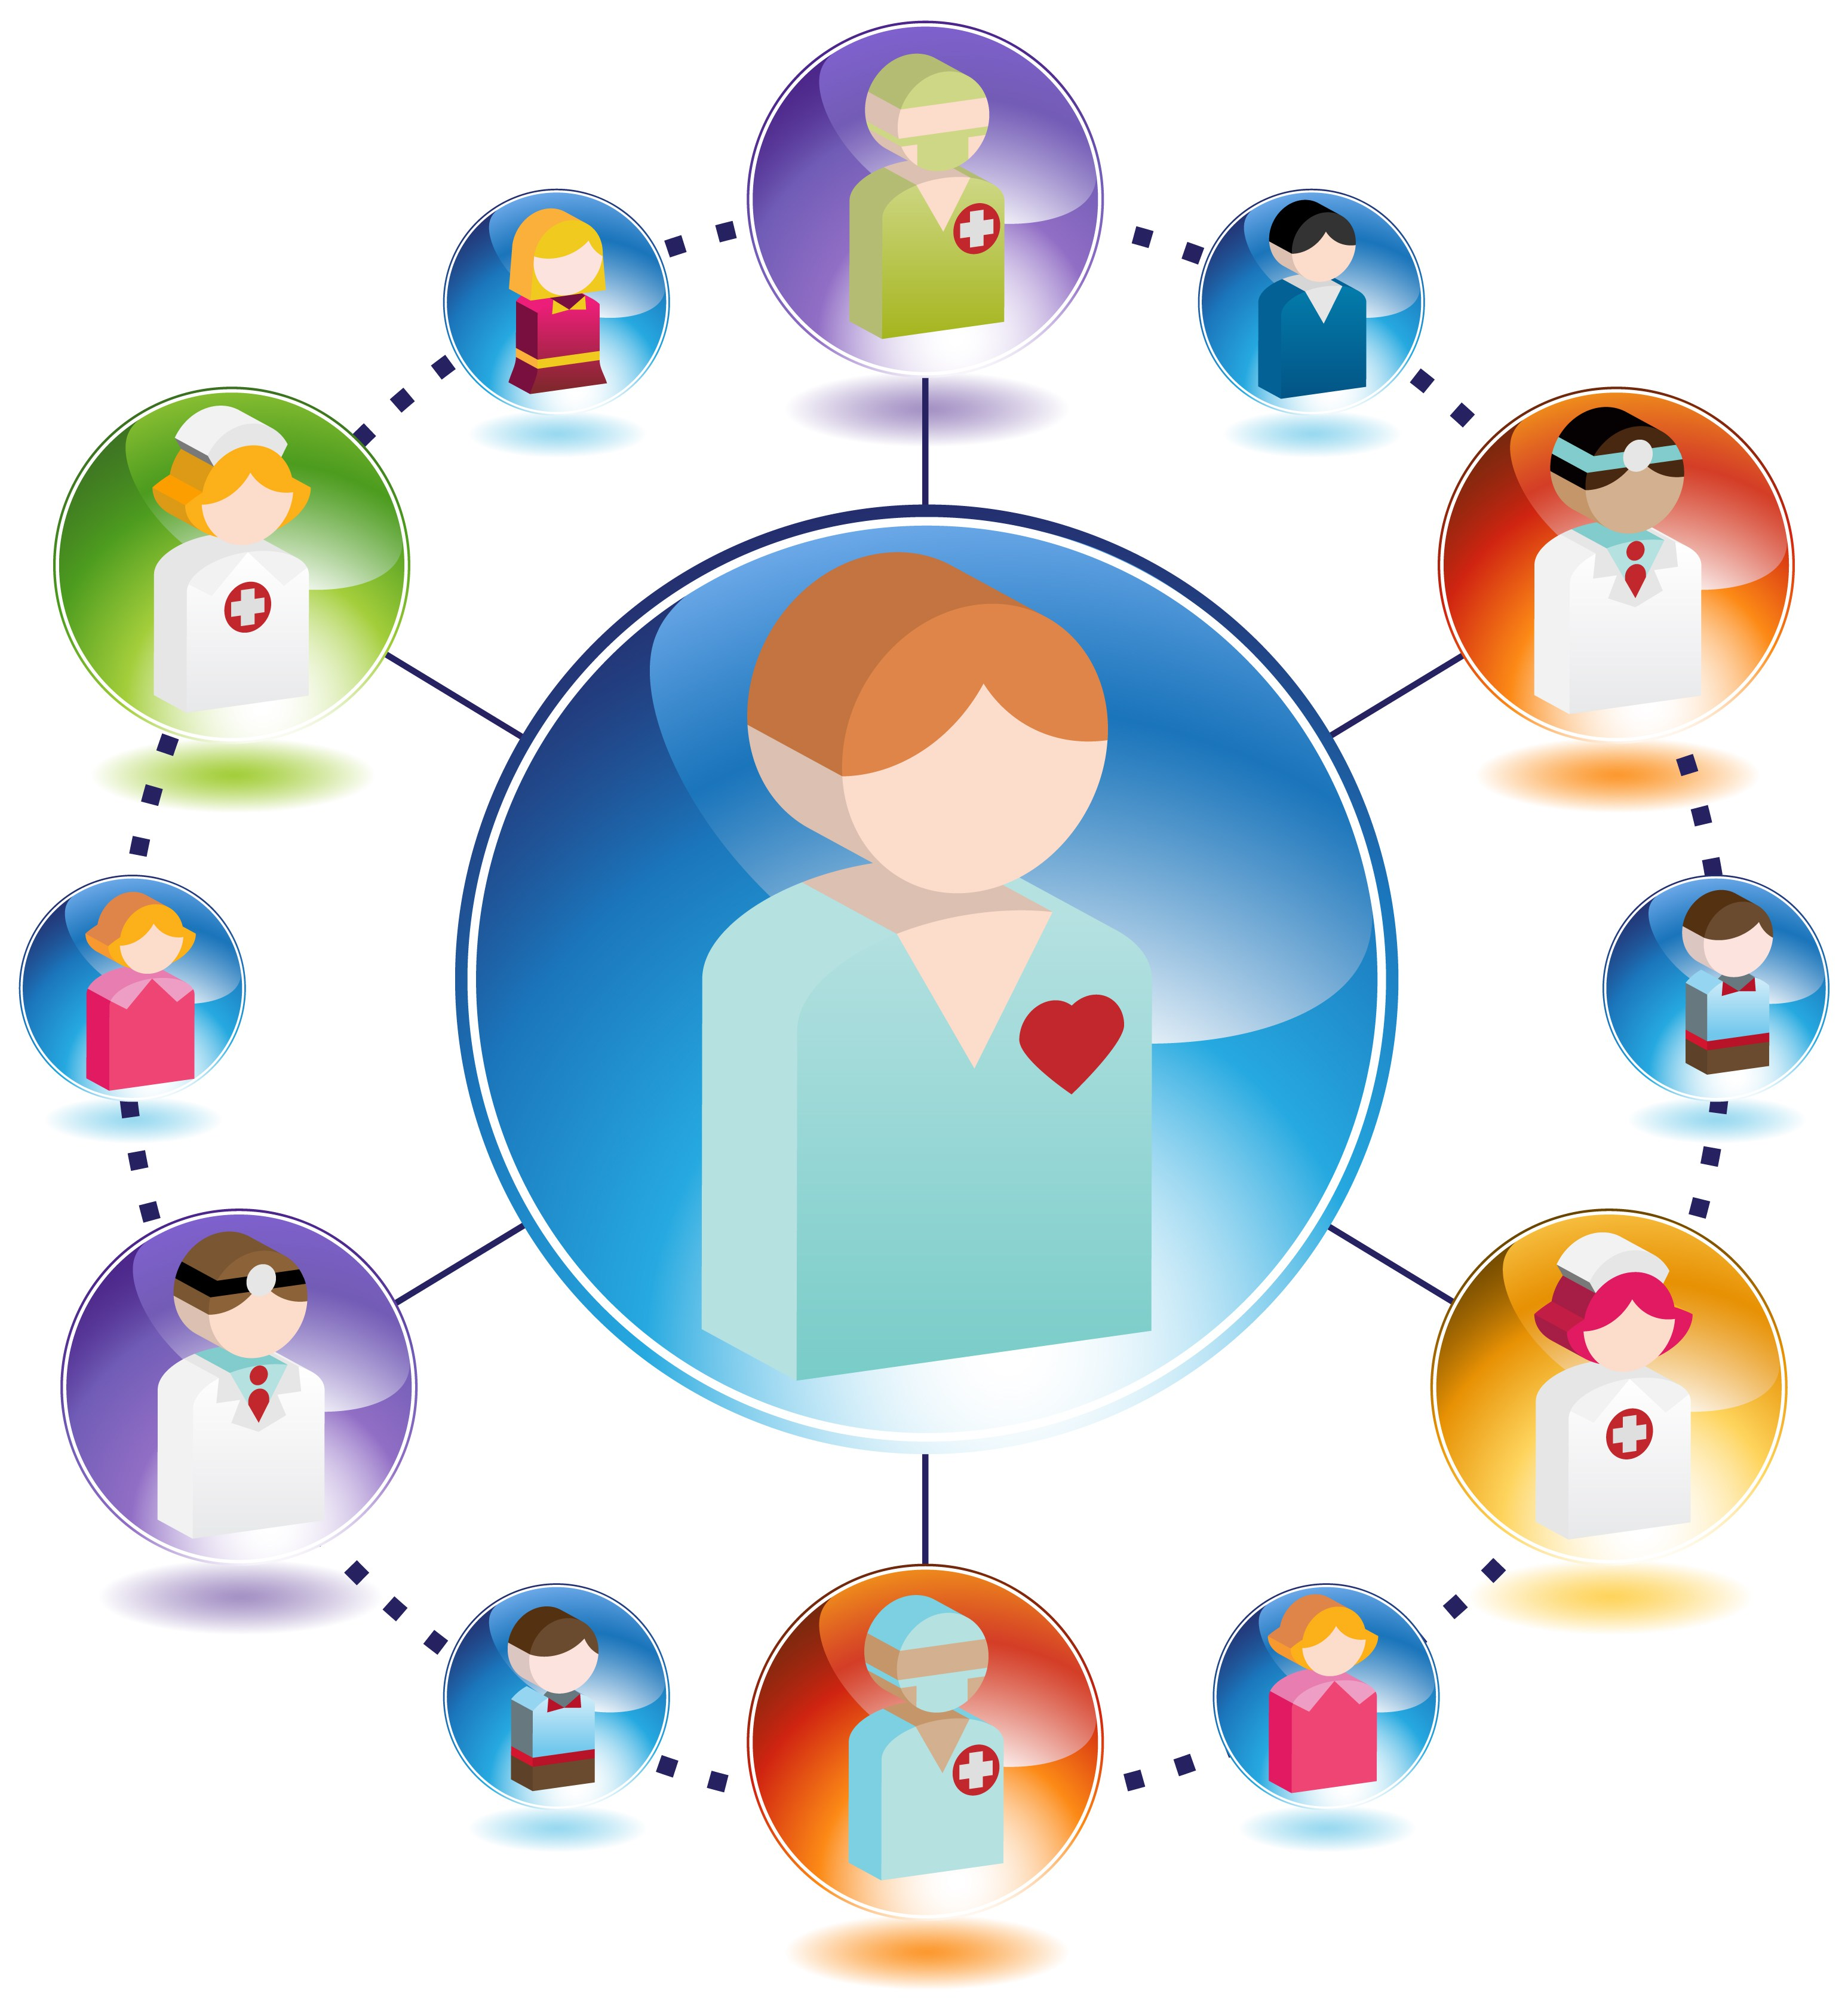 Caring clipart patient centered. Integrated health networks care